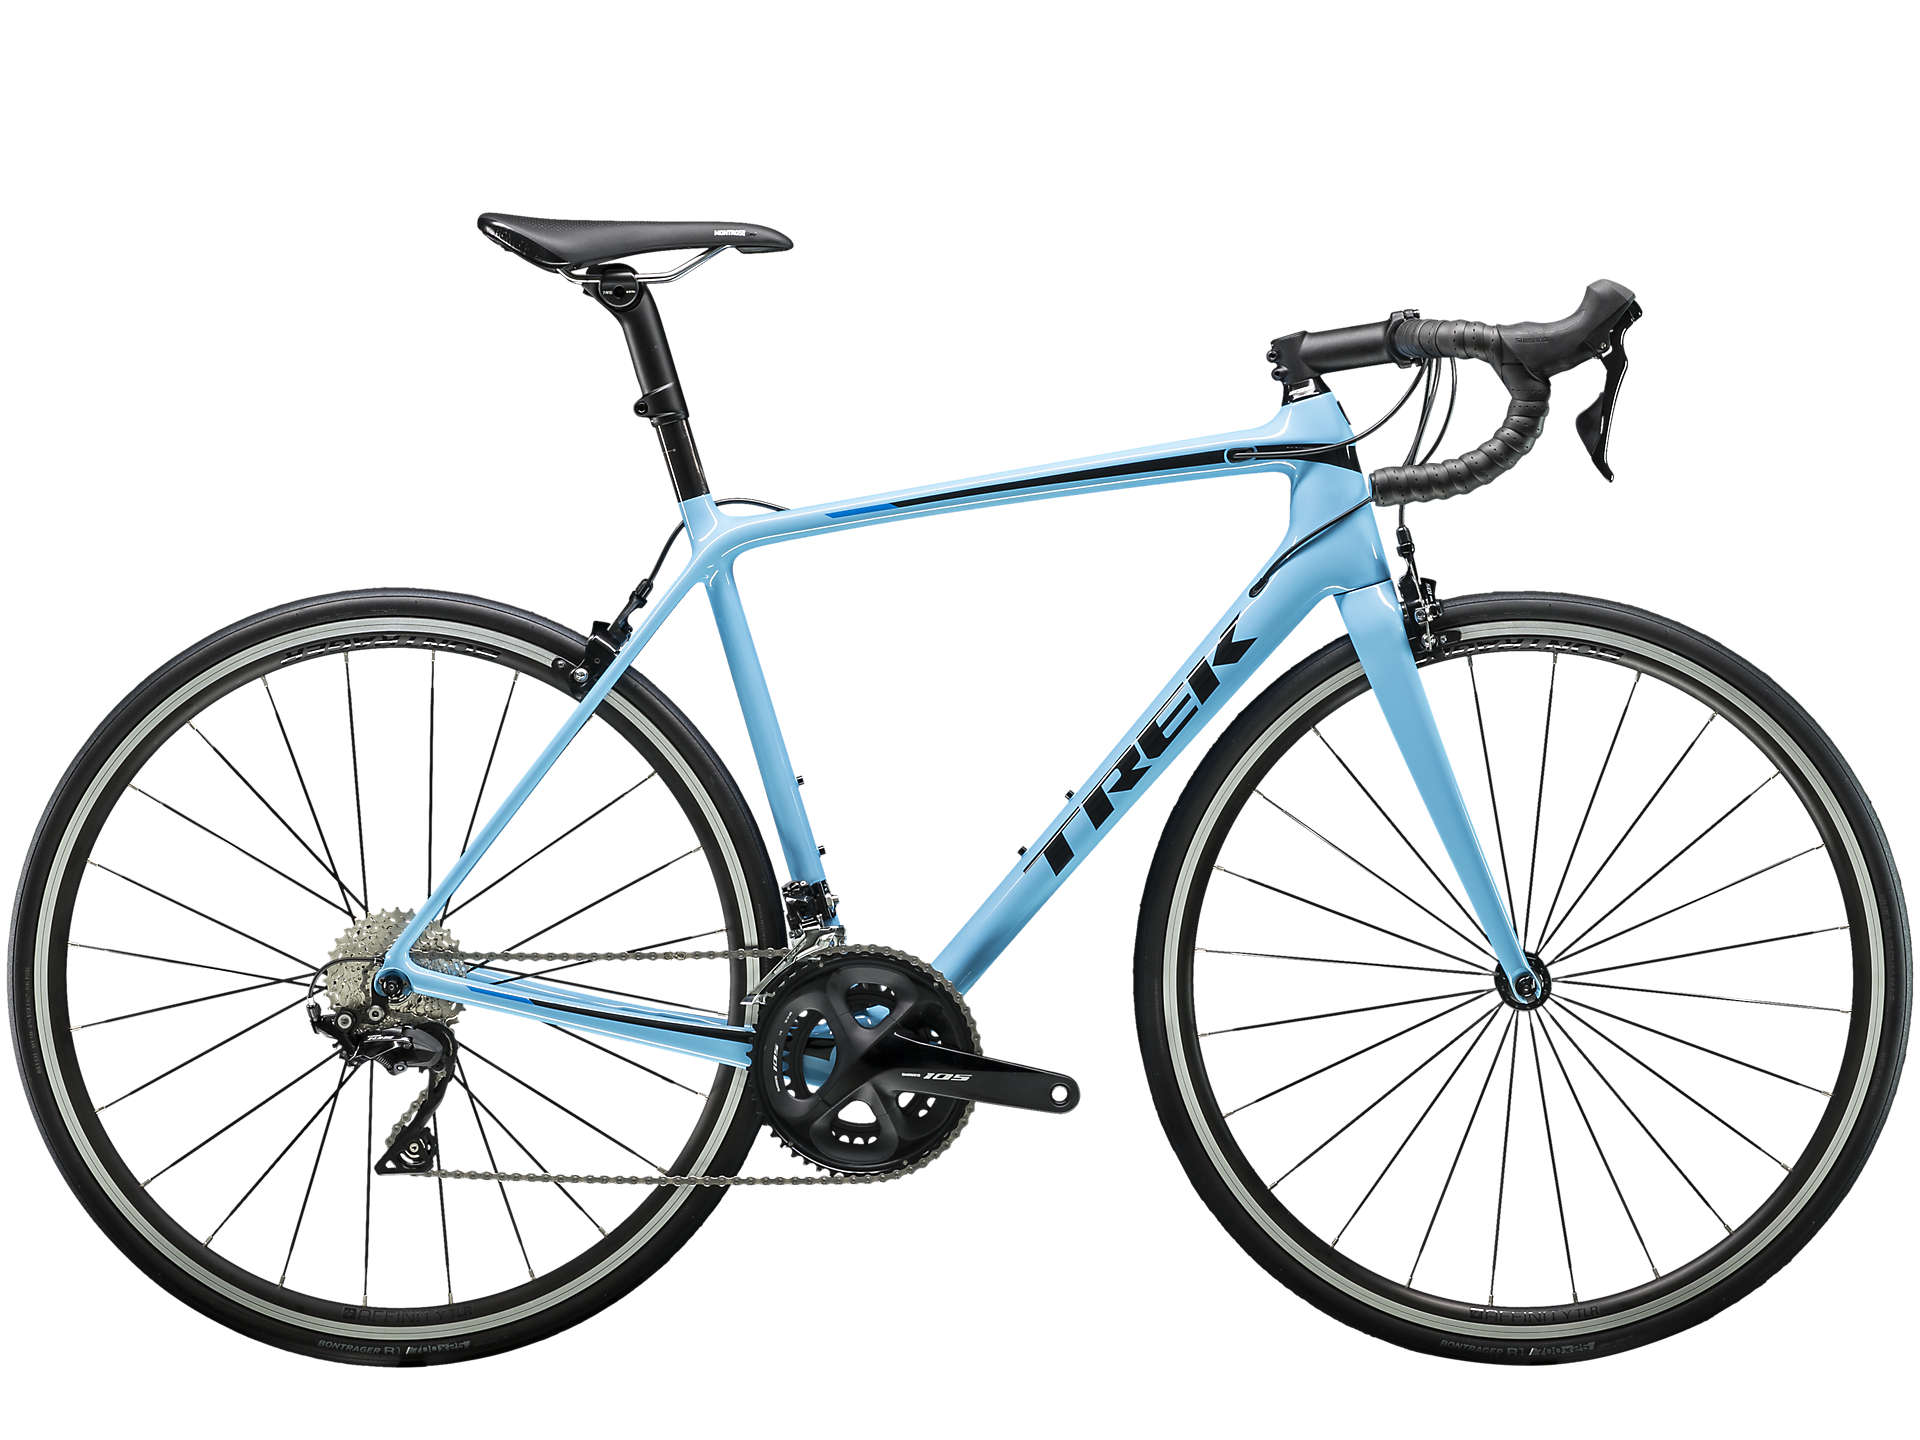 3b8378b9cfe Trek Emonda Sl 5 2019 Road Bike Azure/Carbon £1,800.00